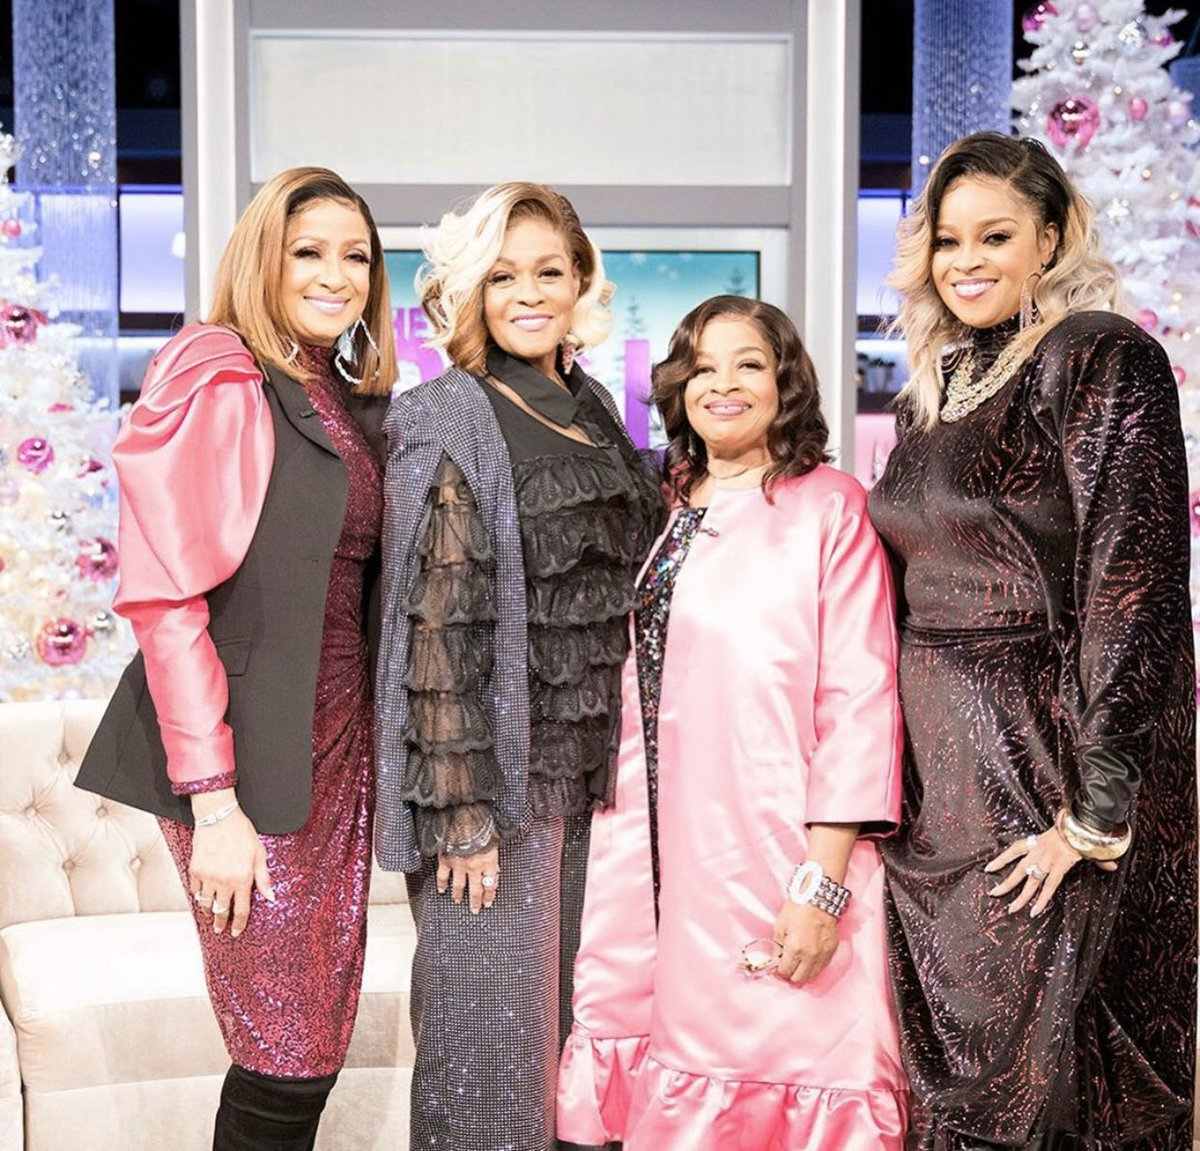 This was so awesome! Me and my sisters were on @TheRealDaytime yesterday. Thank you ladies for having us, we really enjoyed every moment. Much ❤️from the sisters. https://t.co/jvP9u4fLdb